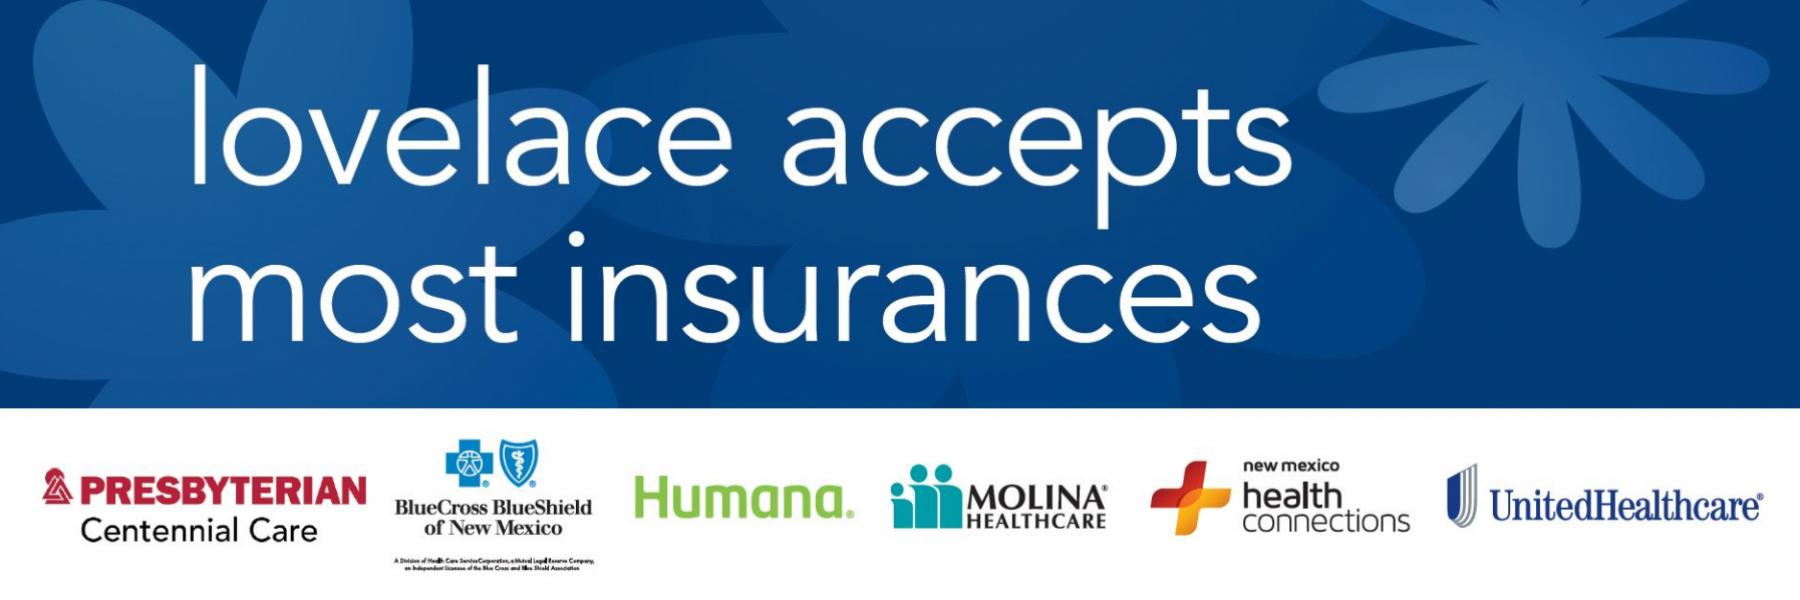 Lovelace accepts most major insurances including Presbyterian Centennial Care